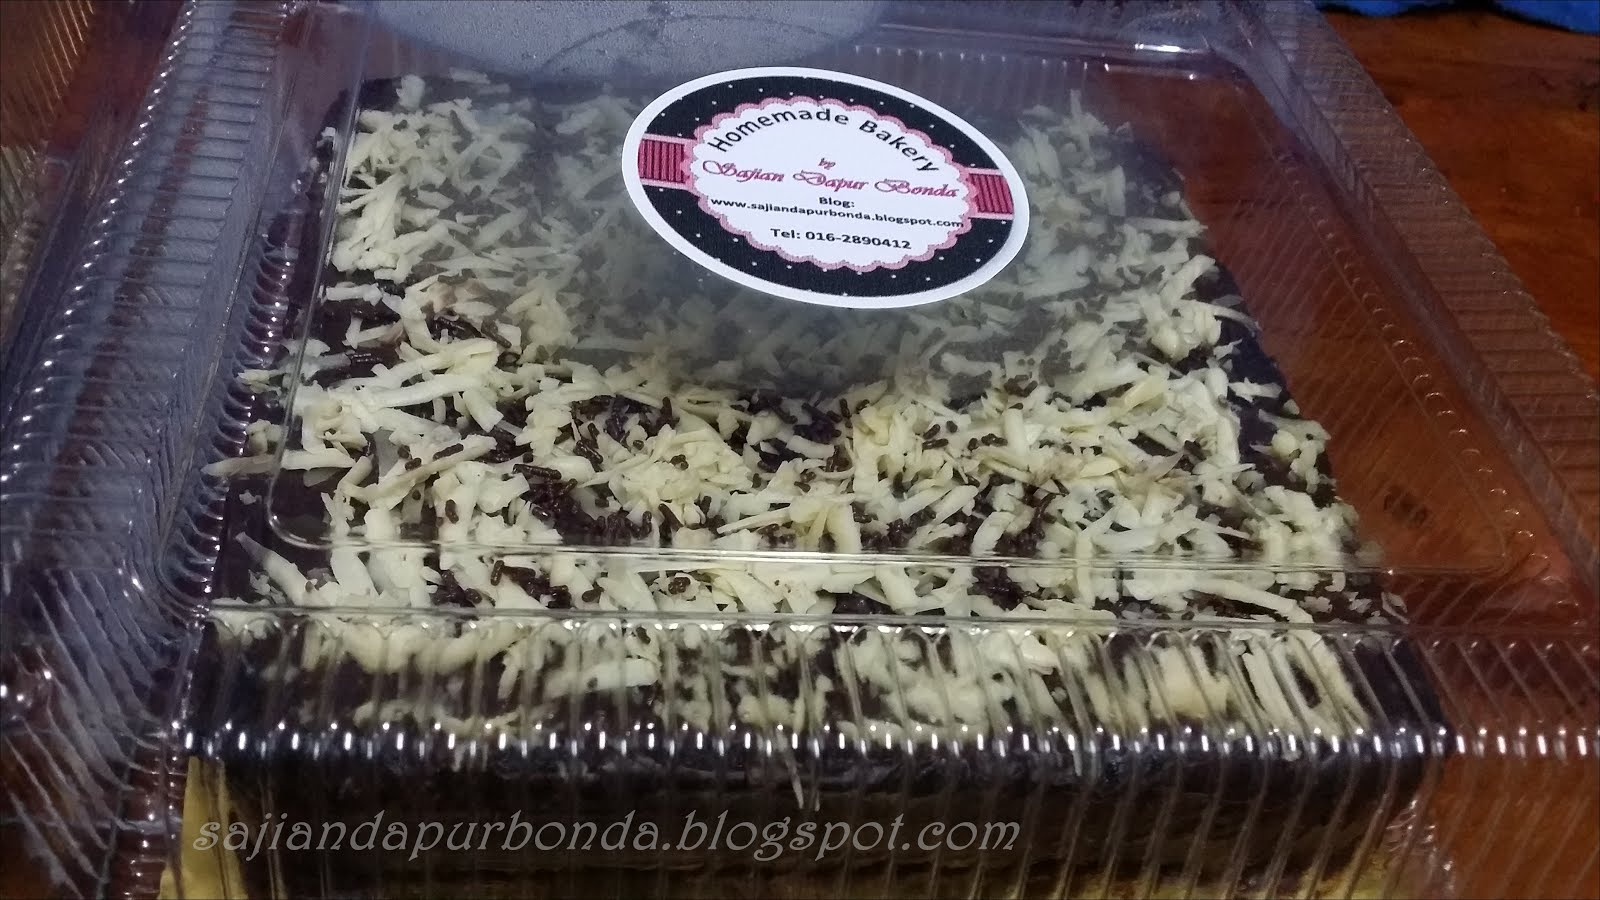 Kek Batik Extravaganza (Topping Chocolate Ganache, dan Cheese)